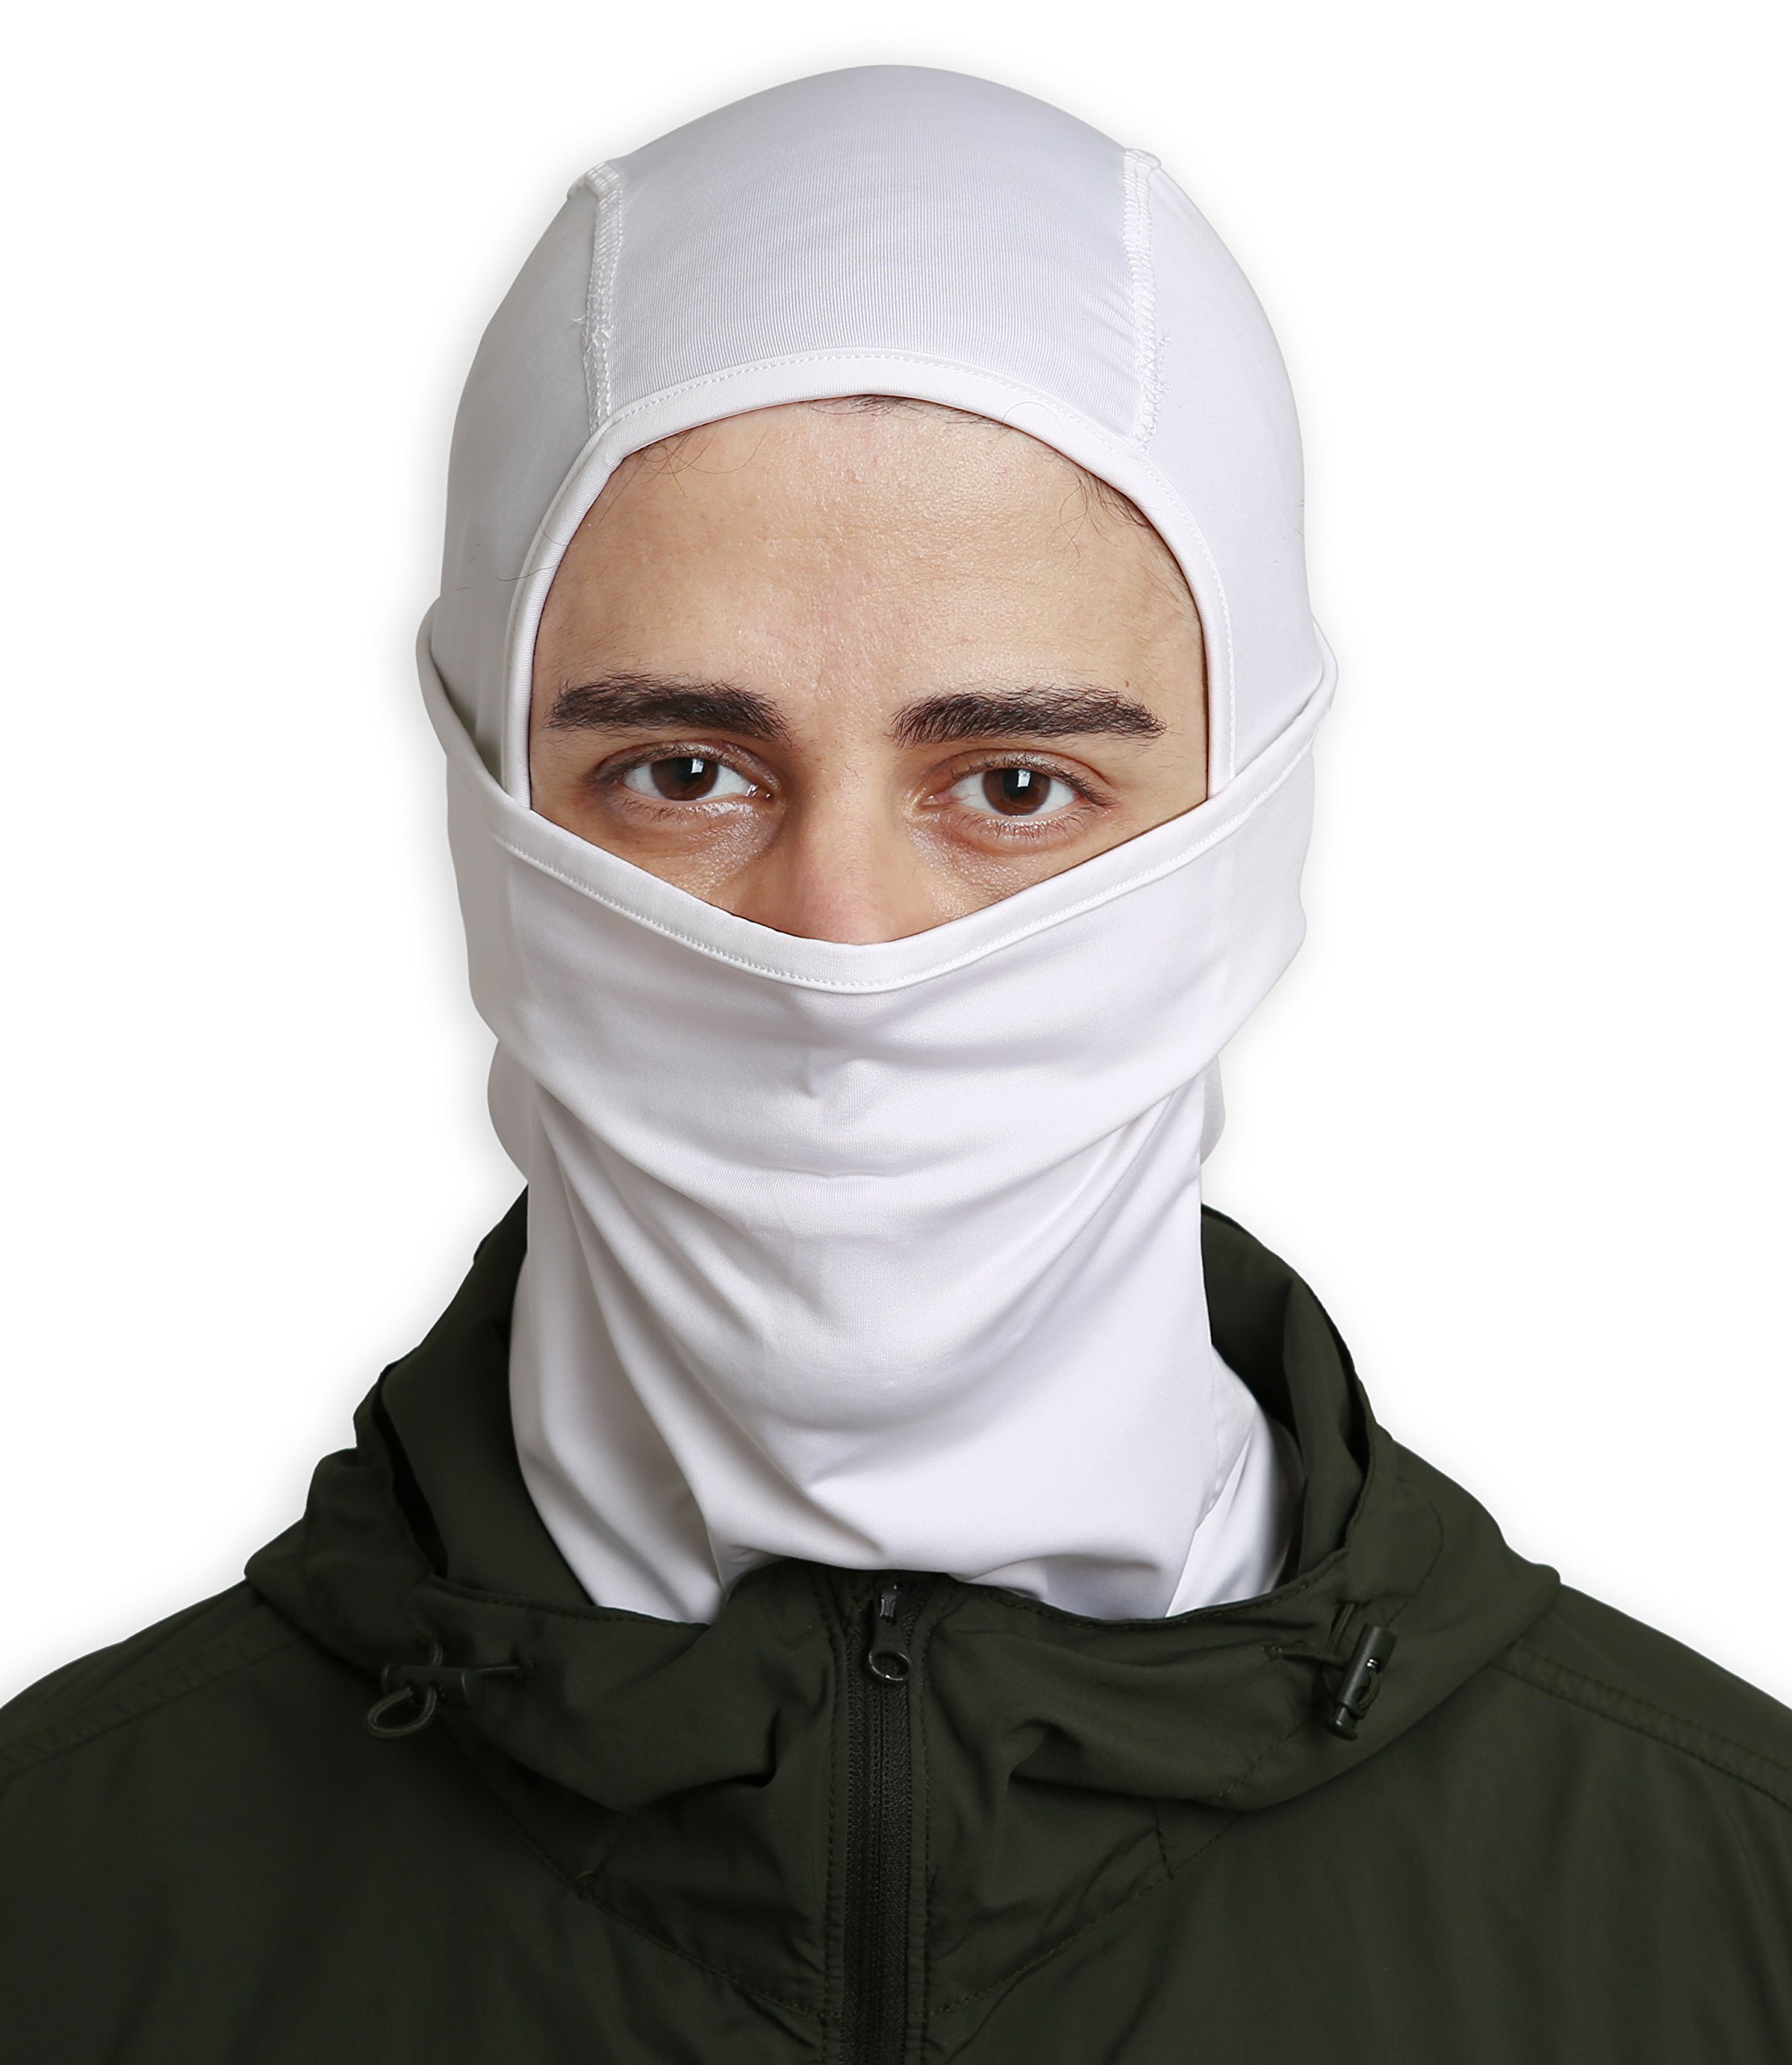 Tough Headwear Balaclava/Windproof Ski Mask/Cold Weather Face Mask for Skiing, Snowboarding, Motorcycling & Winter Sports - Ultimate Protection from The Elements. Fits Under Helmets (White)